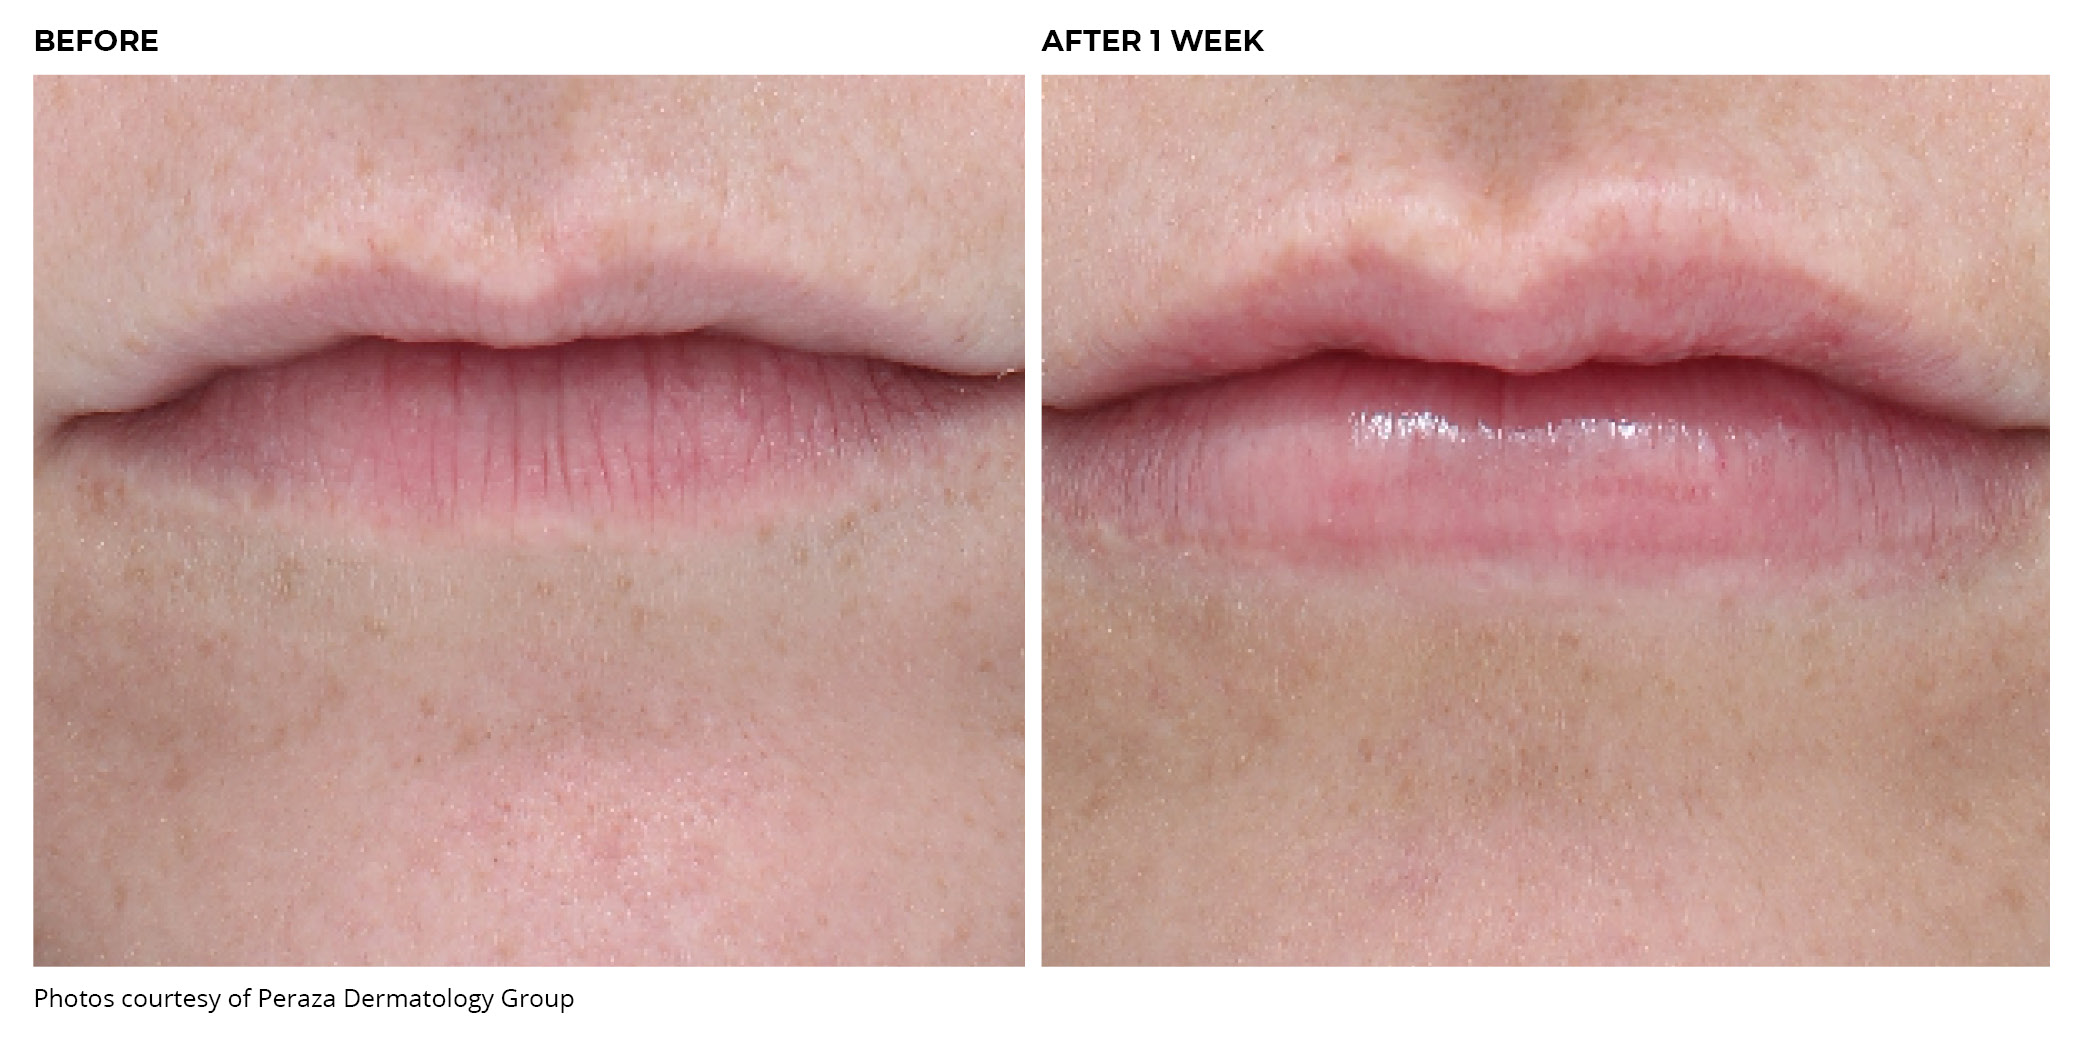 Juvederm Lips Before and After